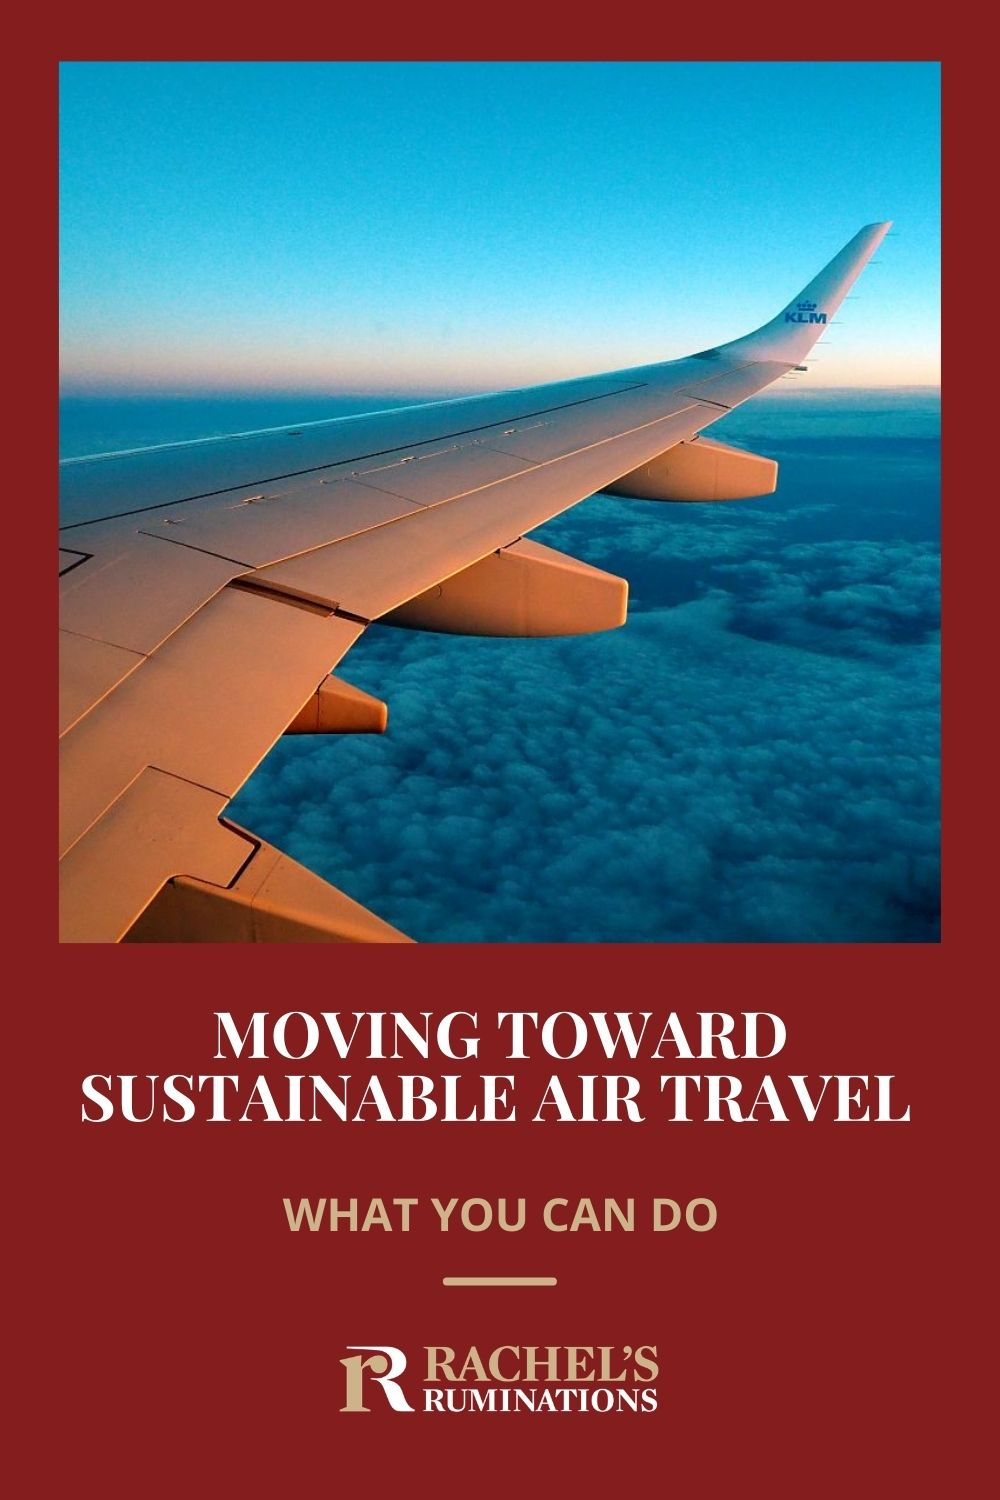 How can we move toward sustainable travel, especially if we still want to fly? Read here about ways to reduce your carbon footprint while flying, carbon offsetting, and carbon removal. via @rachelsruminations